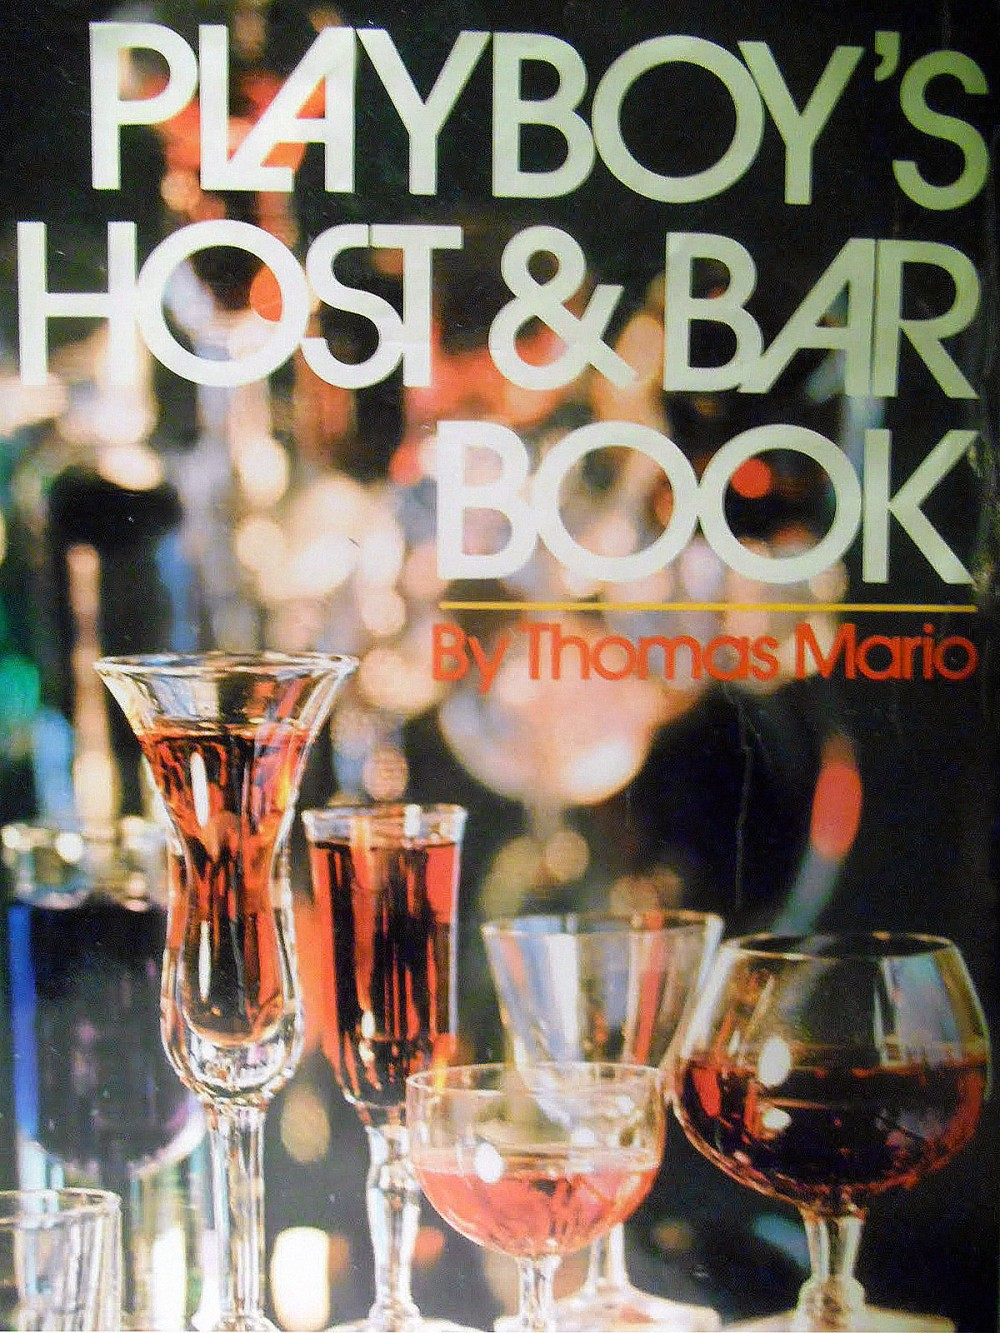 playboy-host-bar-book